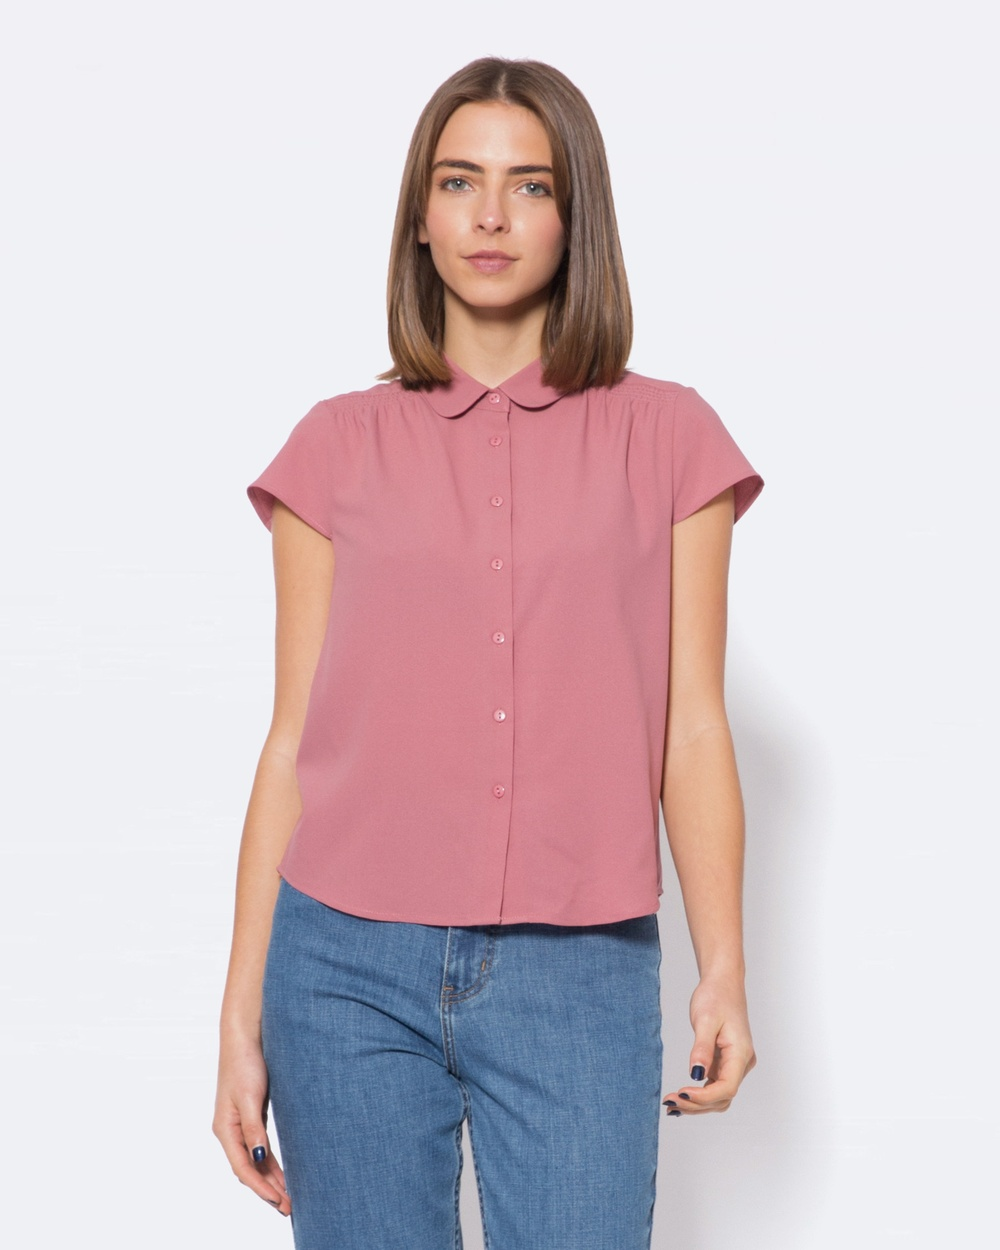 Princess Highway Rita Blouse Tops Pink Rita Blouse